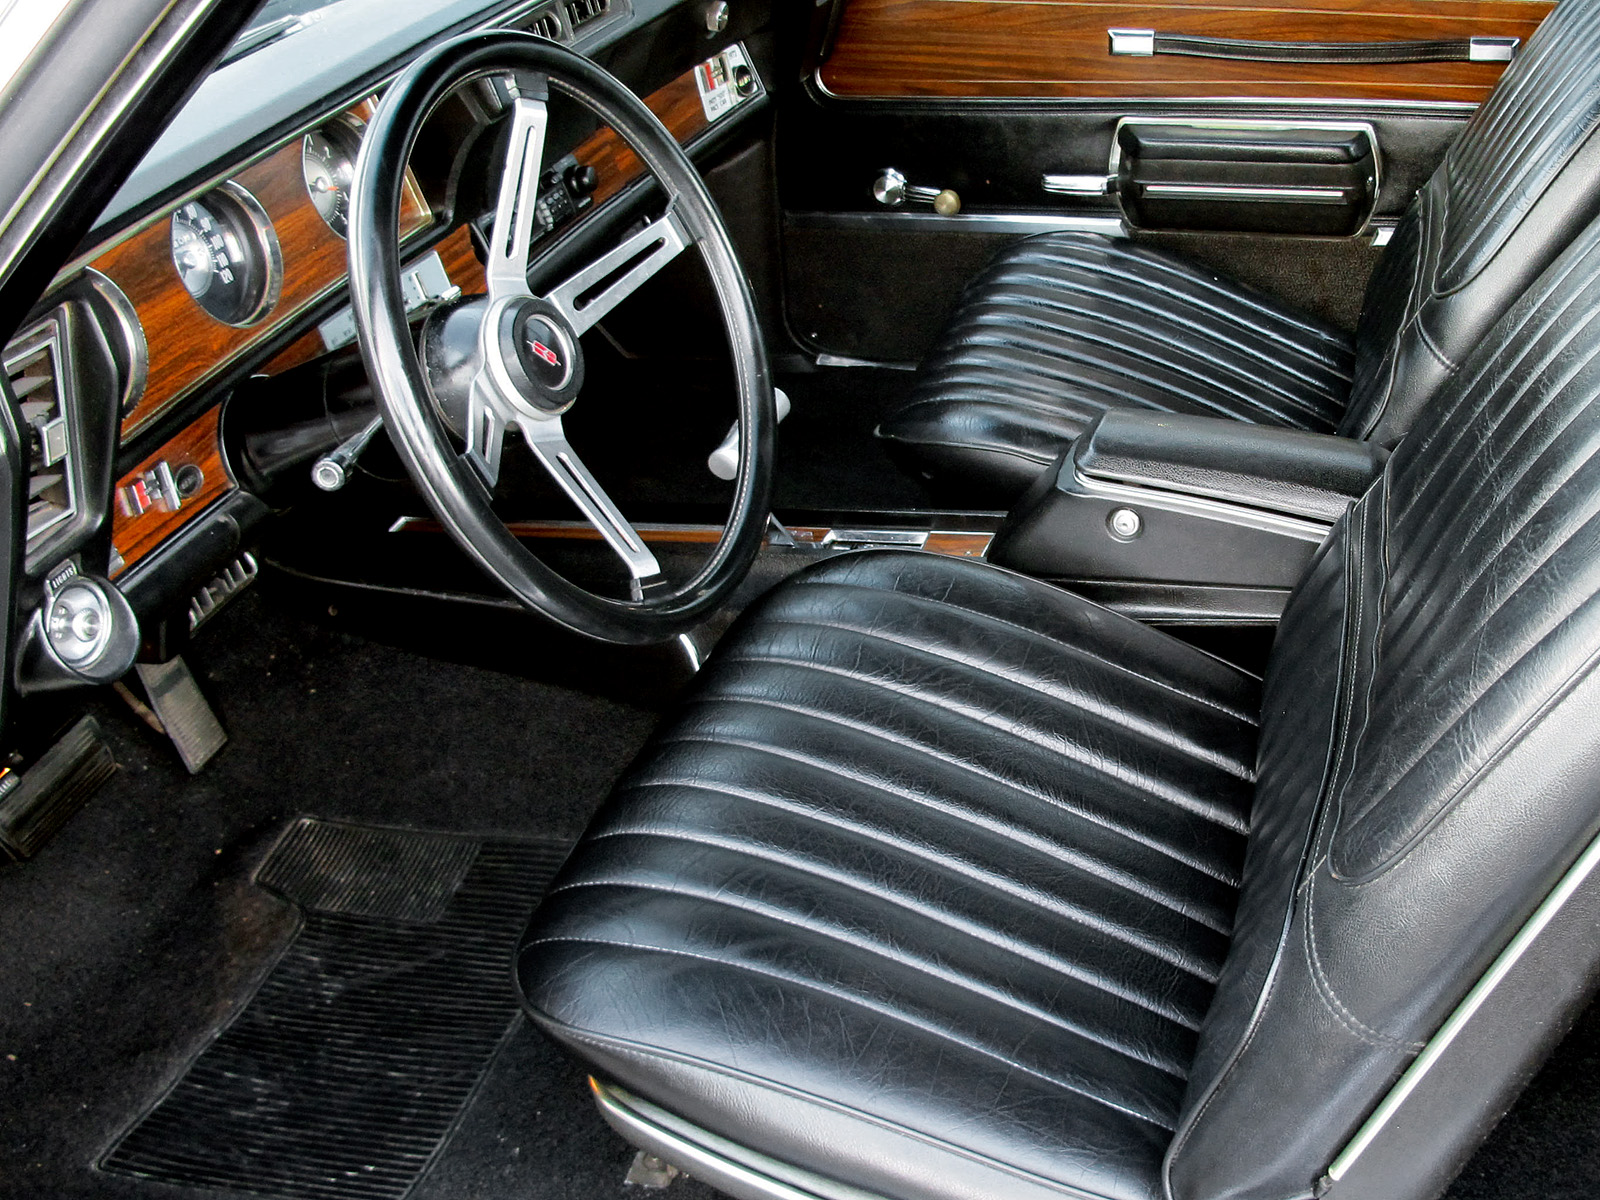 1972 hurst oldsmobile cutlass supreme hardtop coupe indy 500 pace muscle race racing interior f. Black Bedroom Furniture Sets. Home Design Ideas